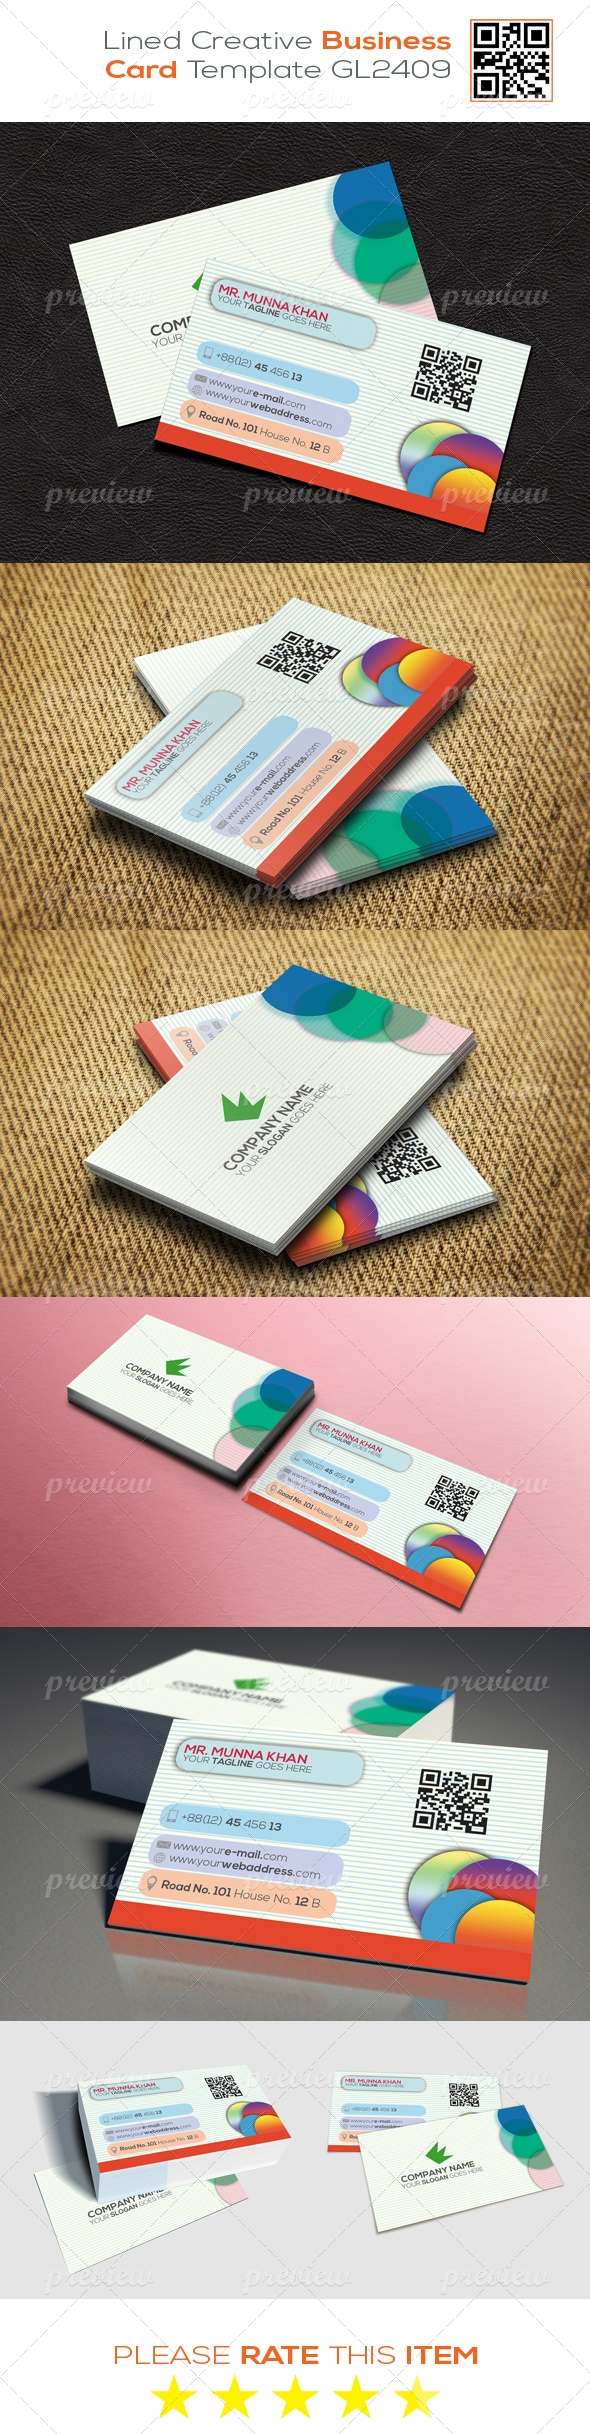 Lined Creative Business Card Template GL2409